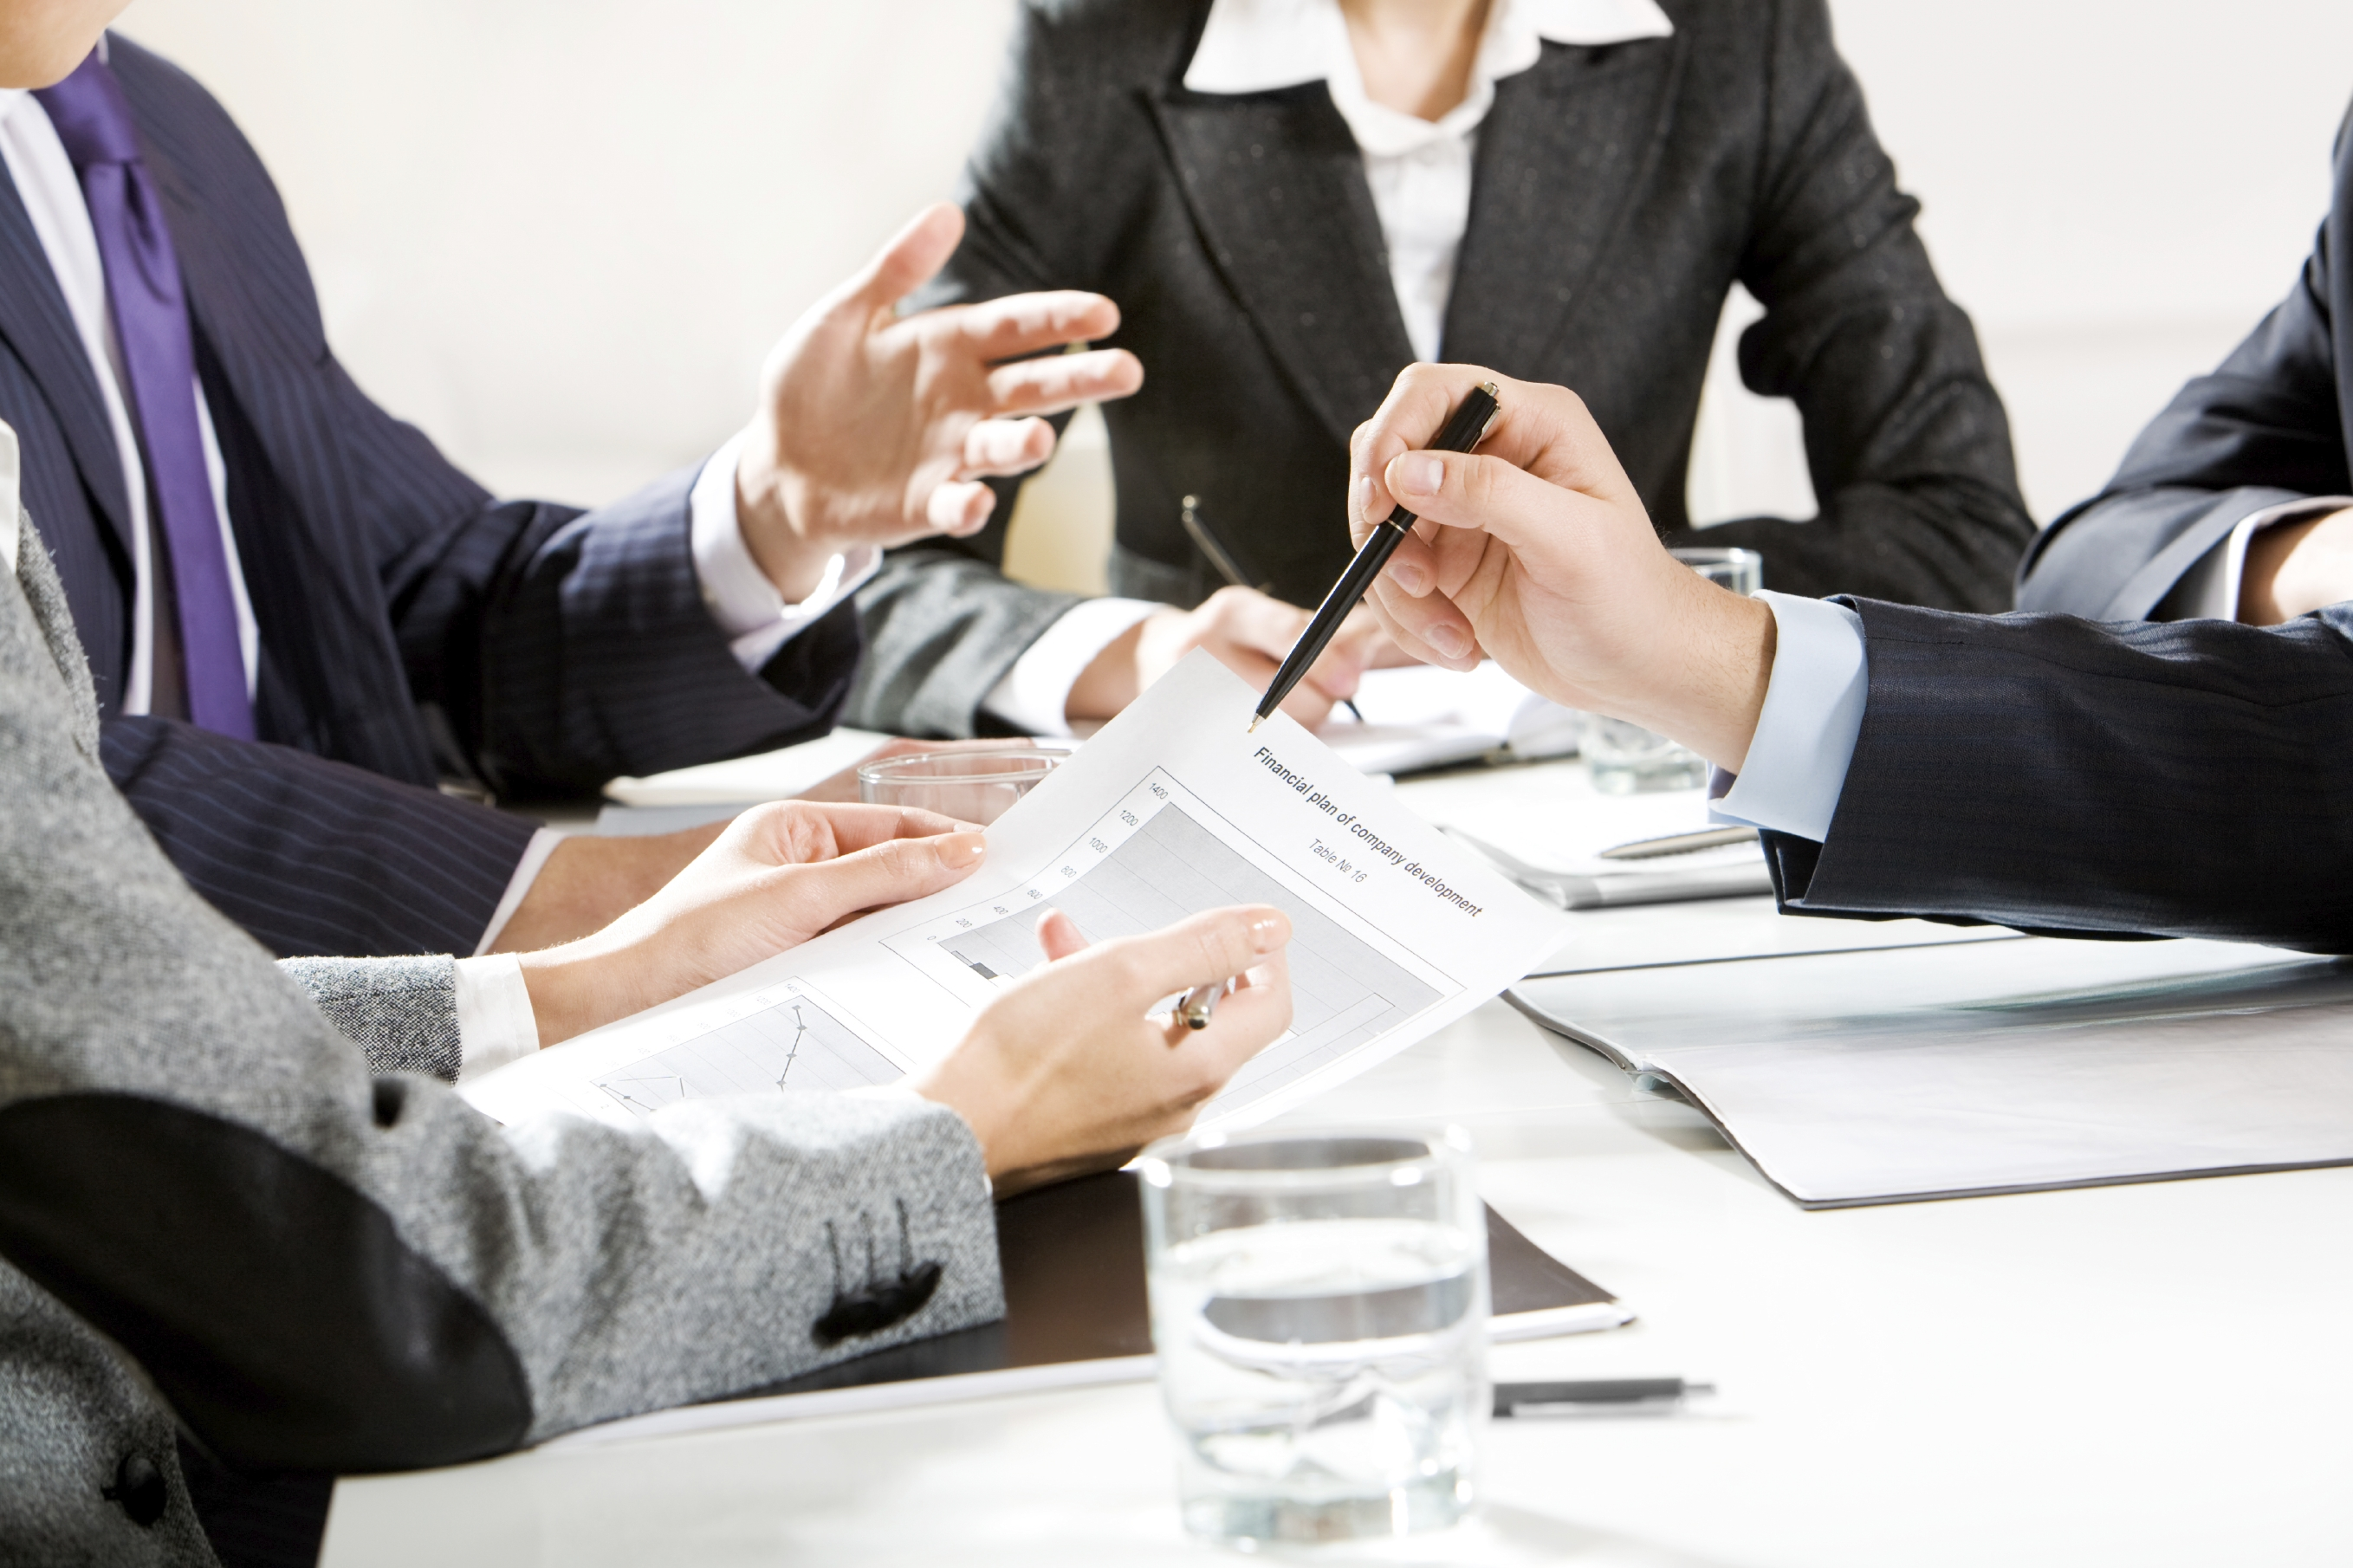 What Makes You Hire a Traffic Lawyer in Raleigh